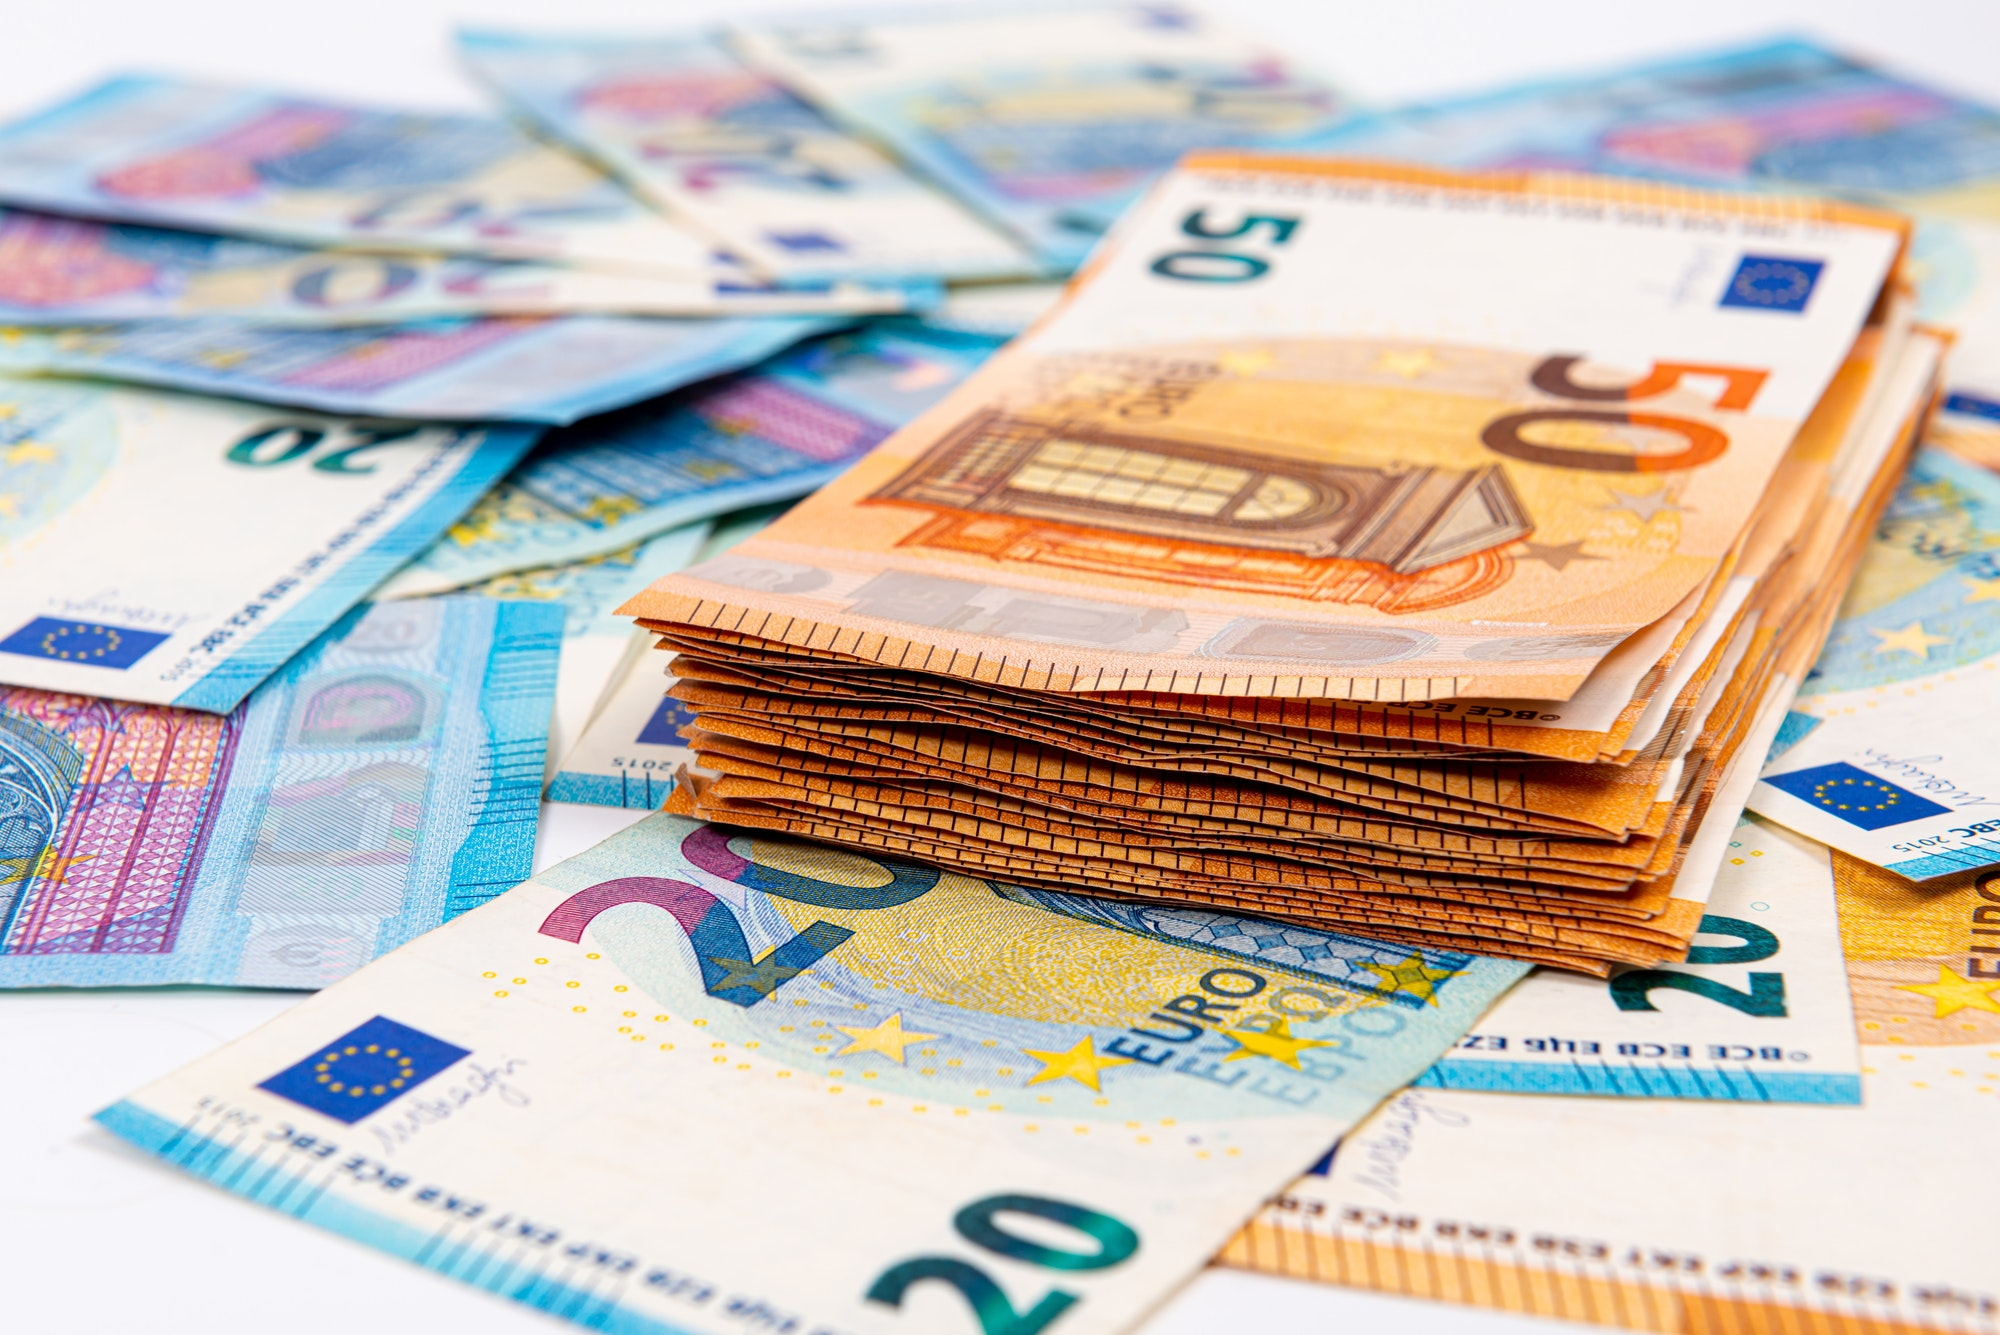 background from euro banknotes, Euro banknote as part of the economic and trading system, Close-up